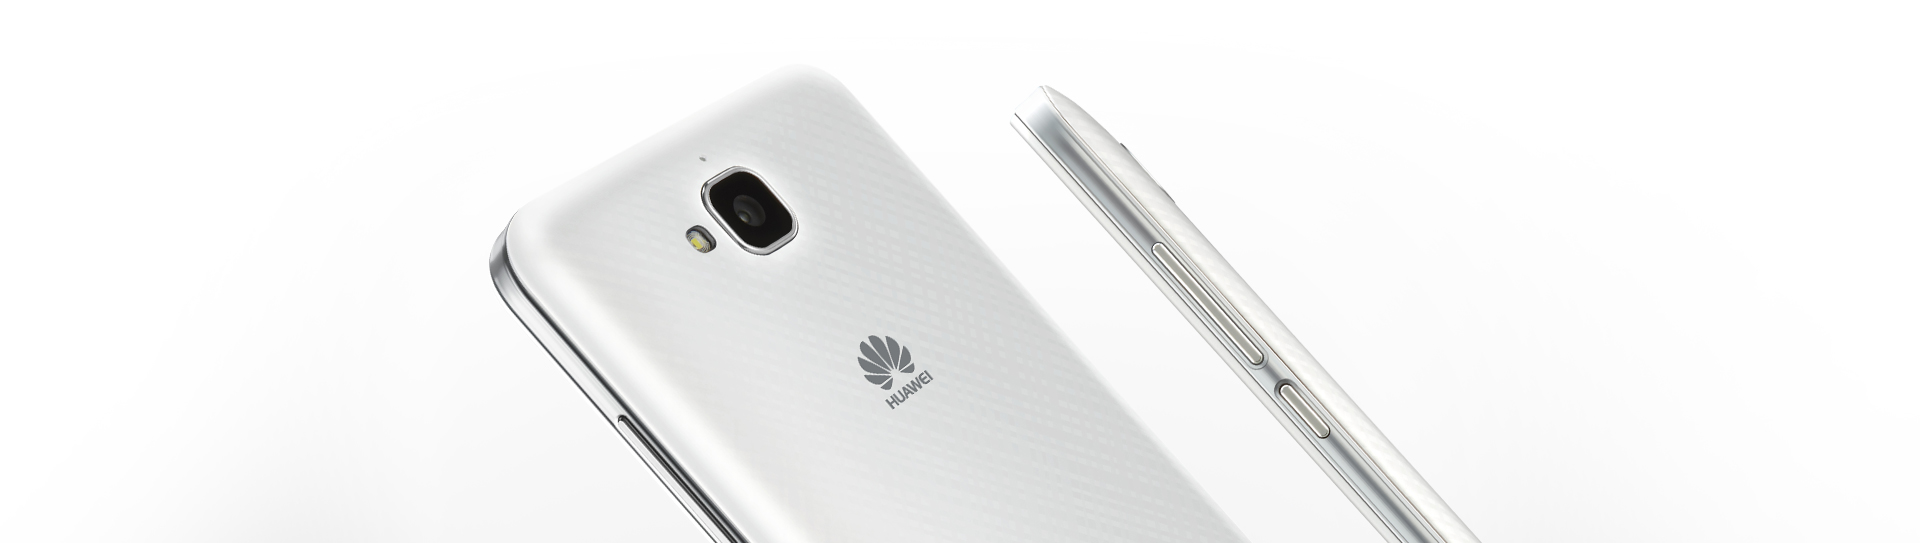 Huawei Y6 Pro камера